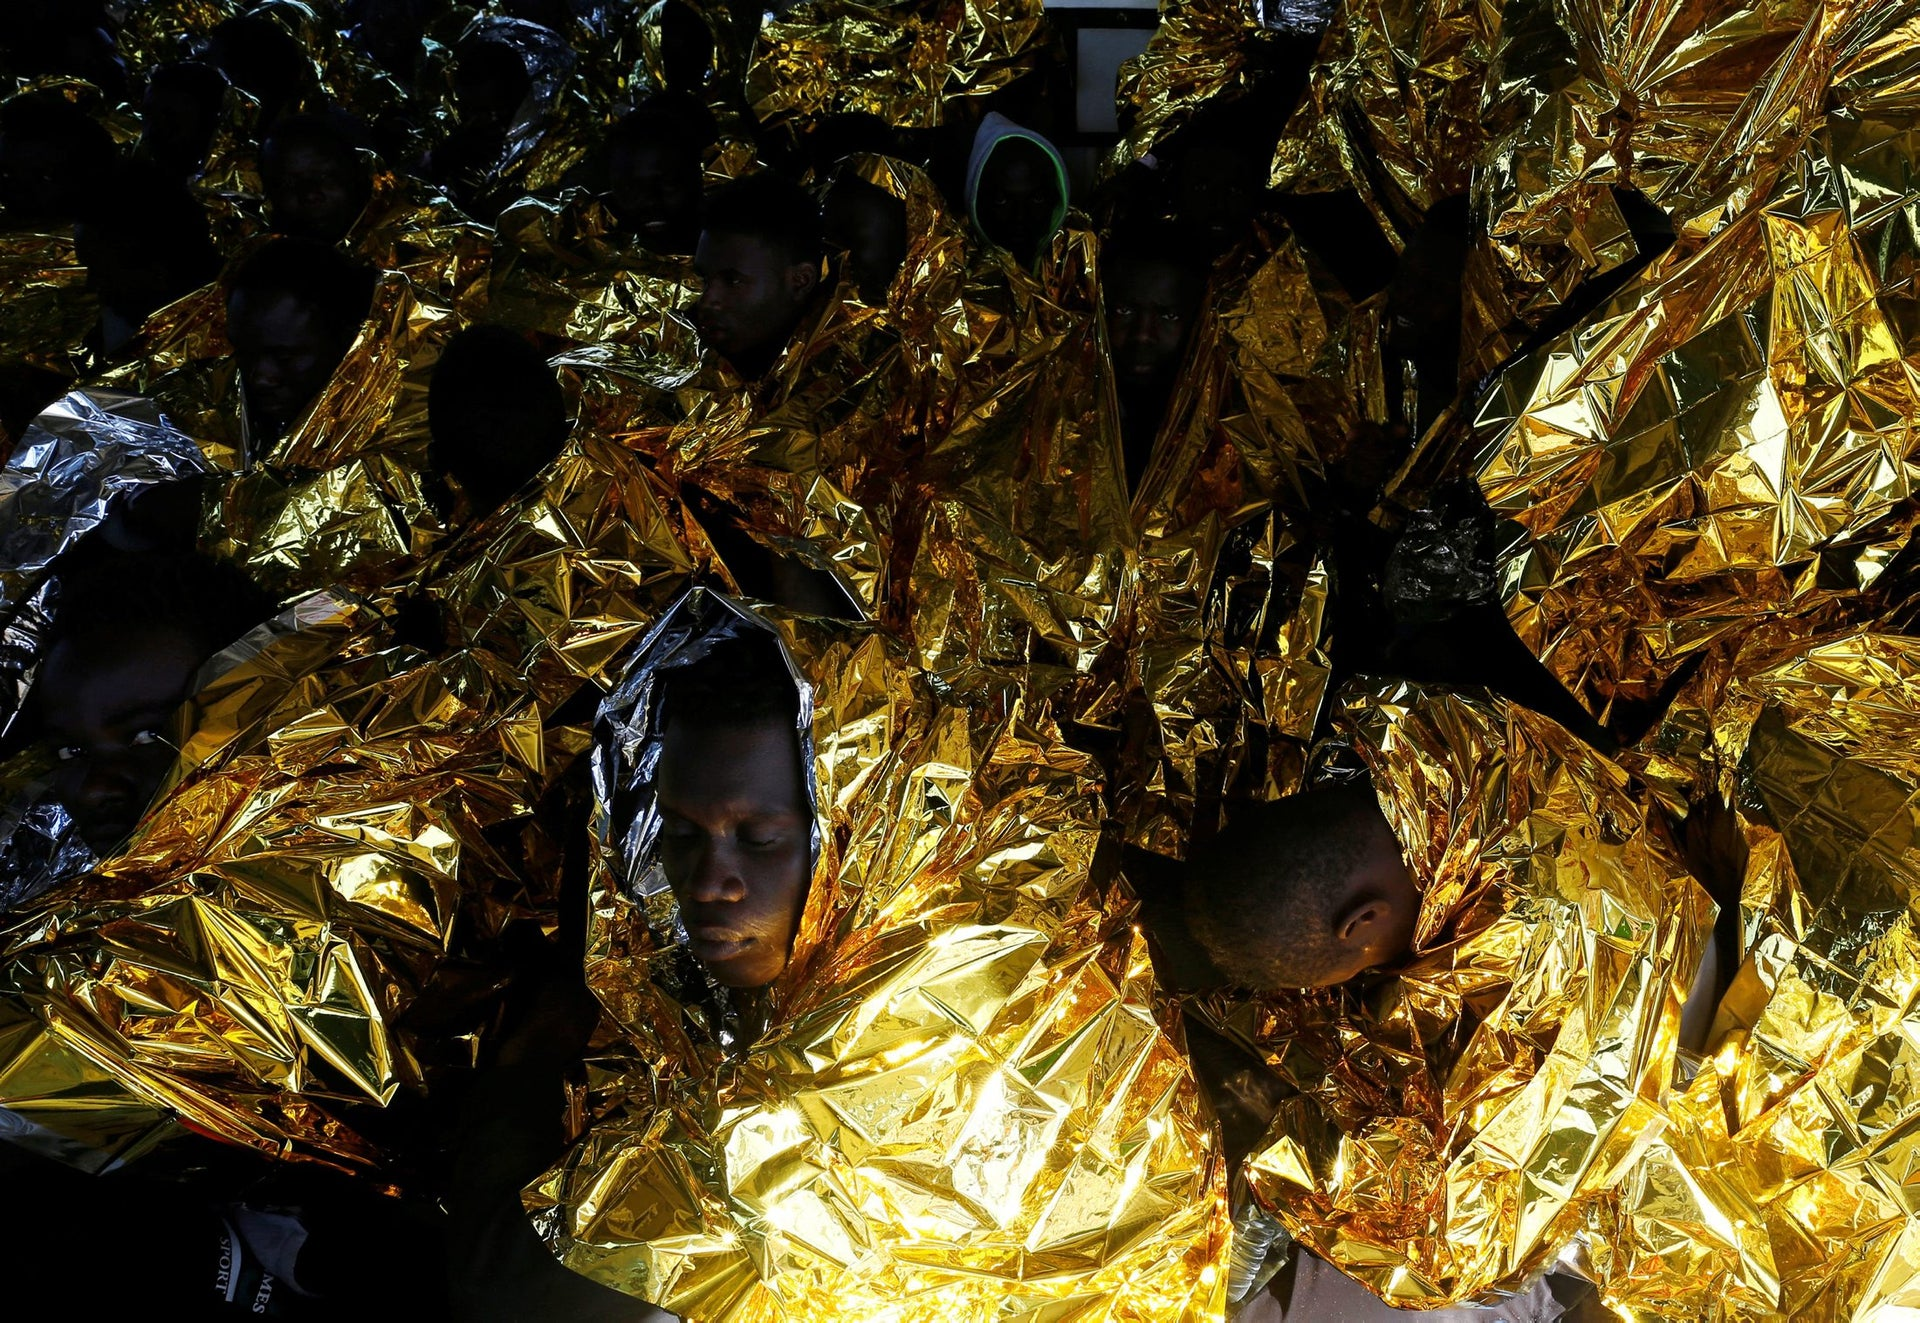 Migrants rest on the deck of the Malta-based NGO Migrant Offshore Aid Station (MOAS) ship Phoenix after being rescued from a rubber dinghy in the central Mediterranean in international waters some 15 nautical miles off the coast of Zawiya in Libya, April 14, 2017.